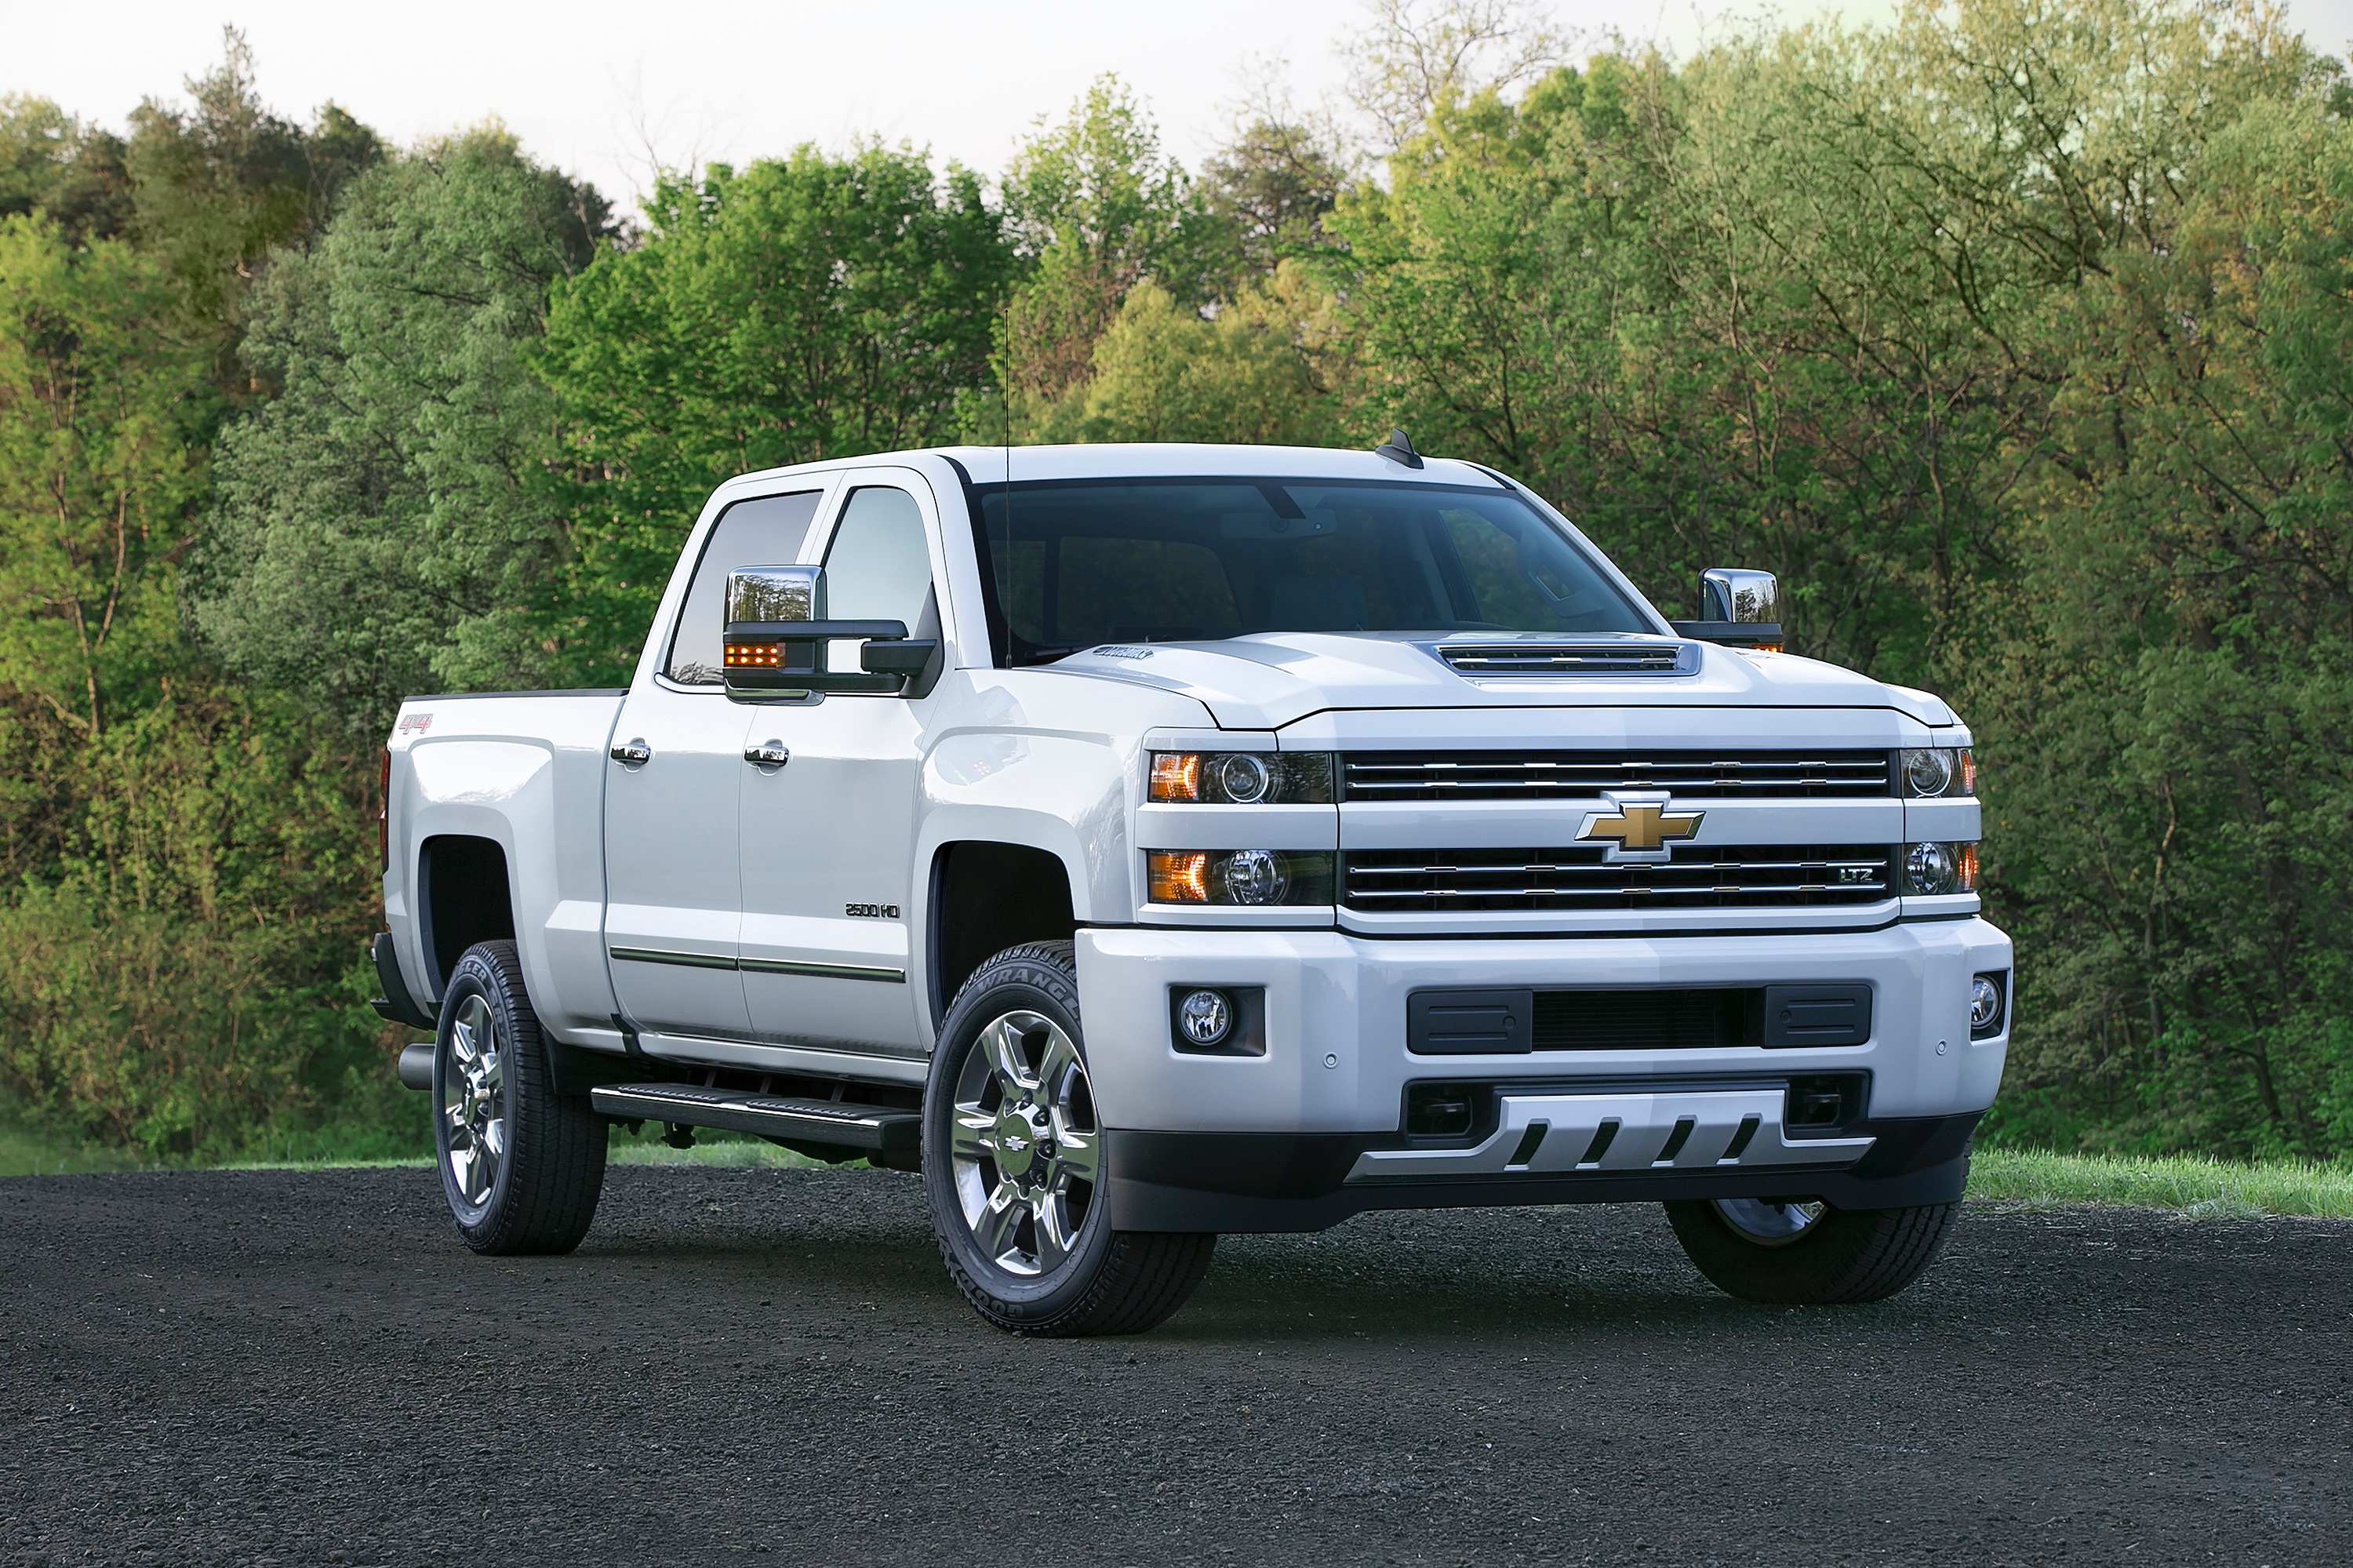 The 2017 Chevrolet Silverado Hd Features An All New Patented Air Intake System